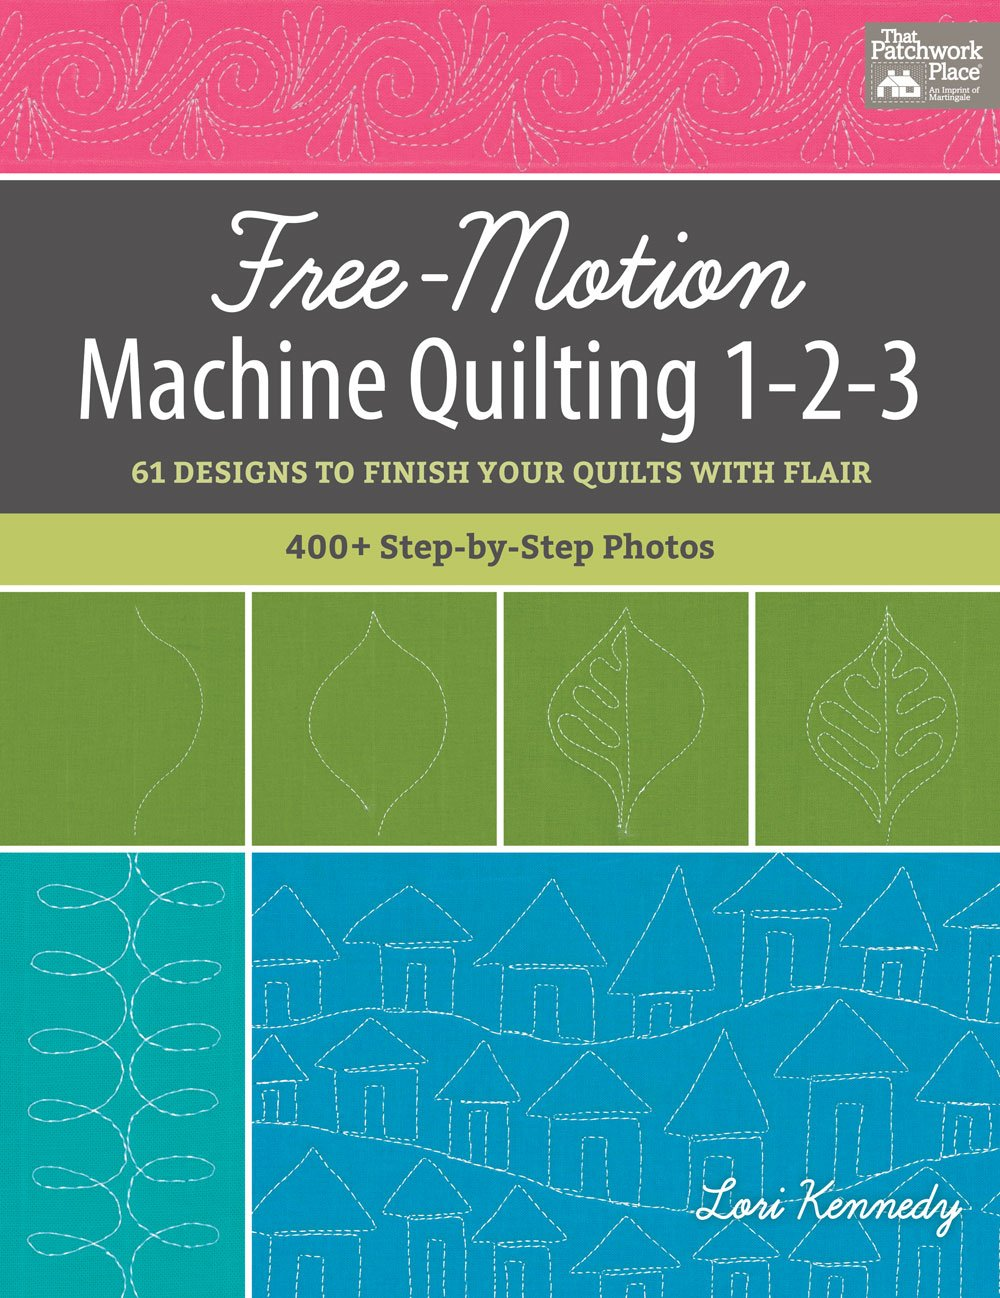 Free Motion Machine Quilting 1 2 3 Designs product image